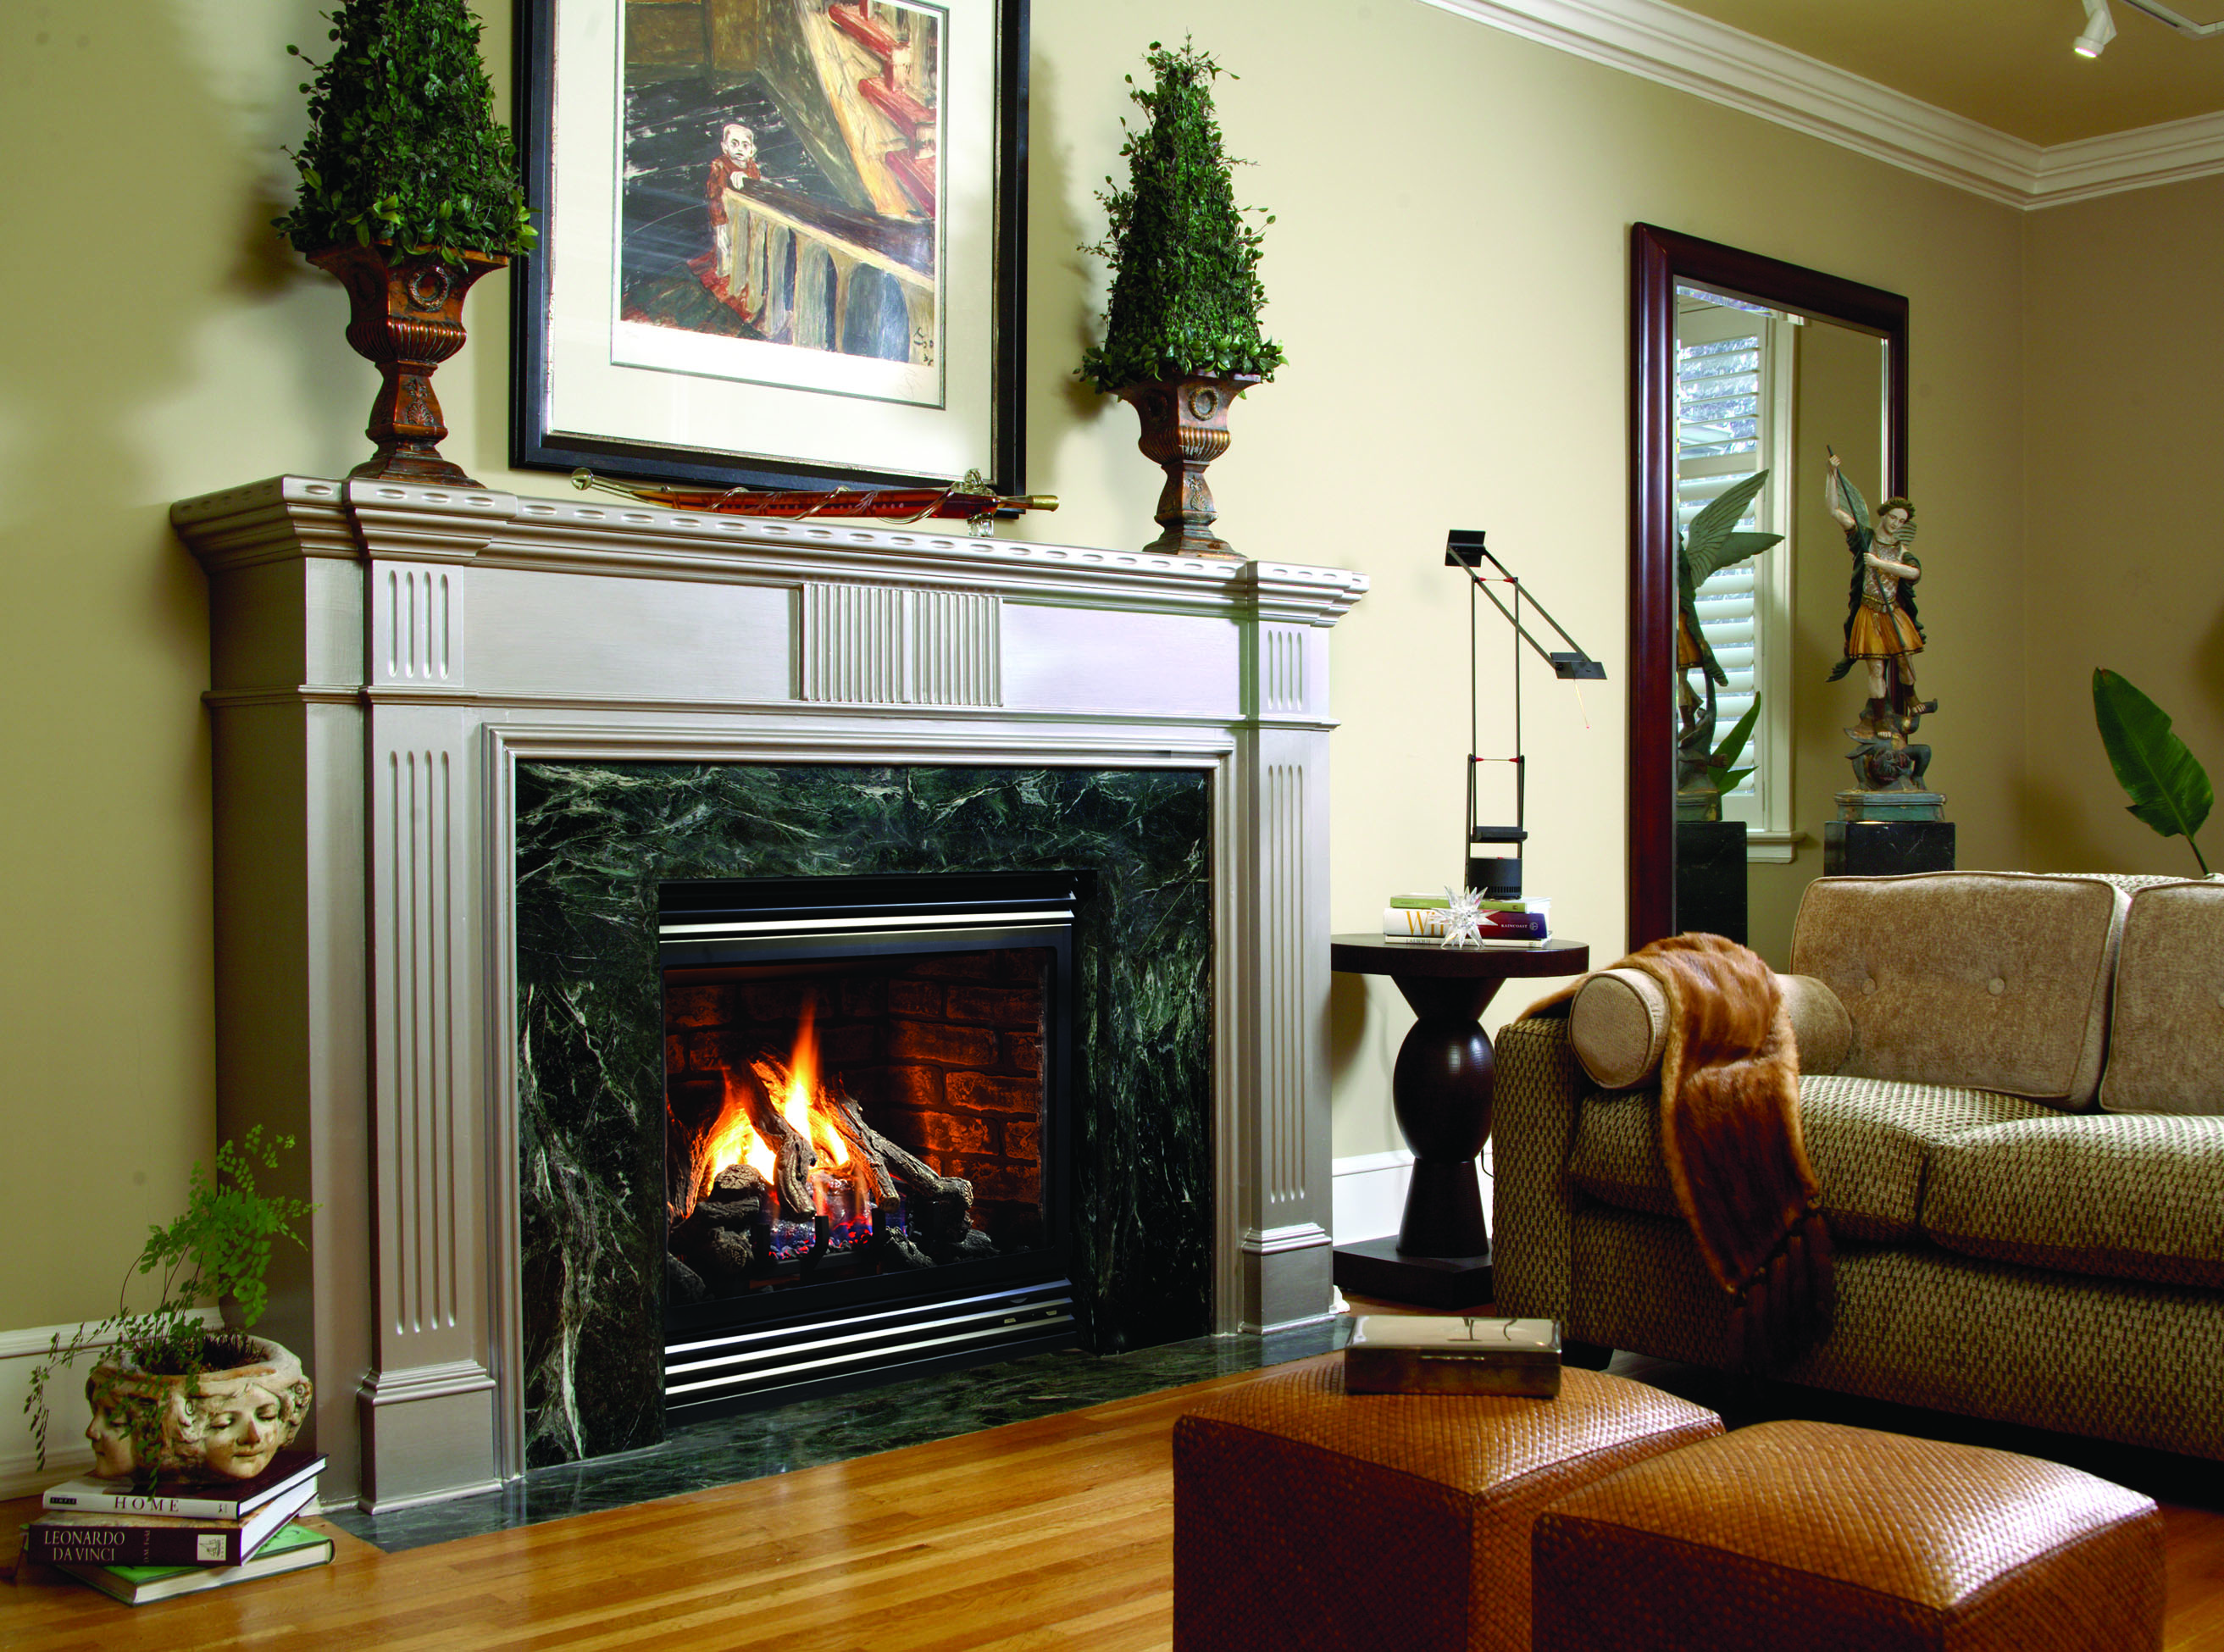 Mount Chesney Mantle Surround with 47 fireplace